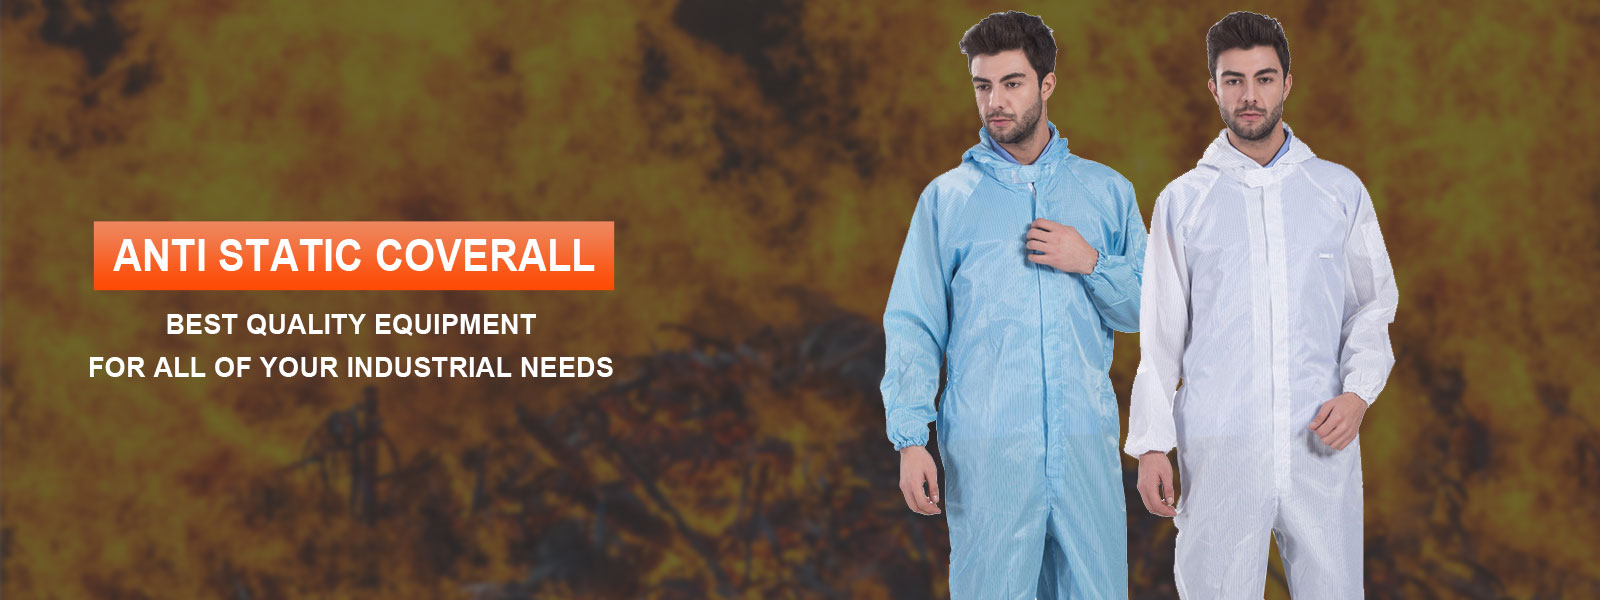 Anti Static Coverall Manufacturers in Belize